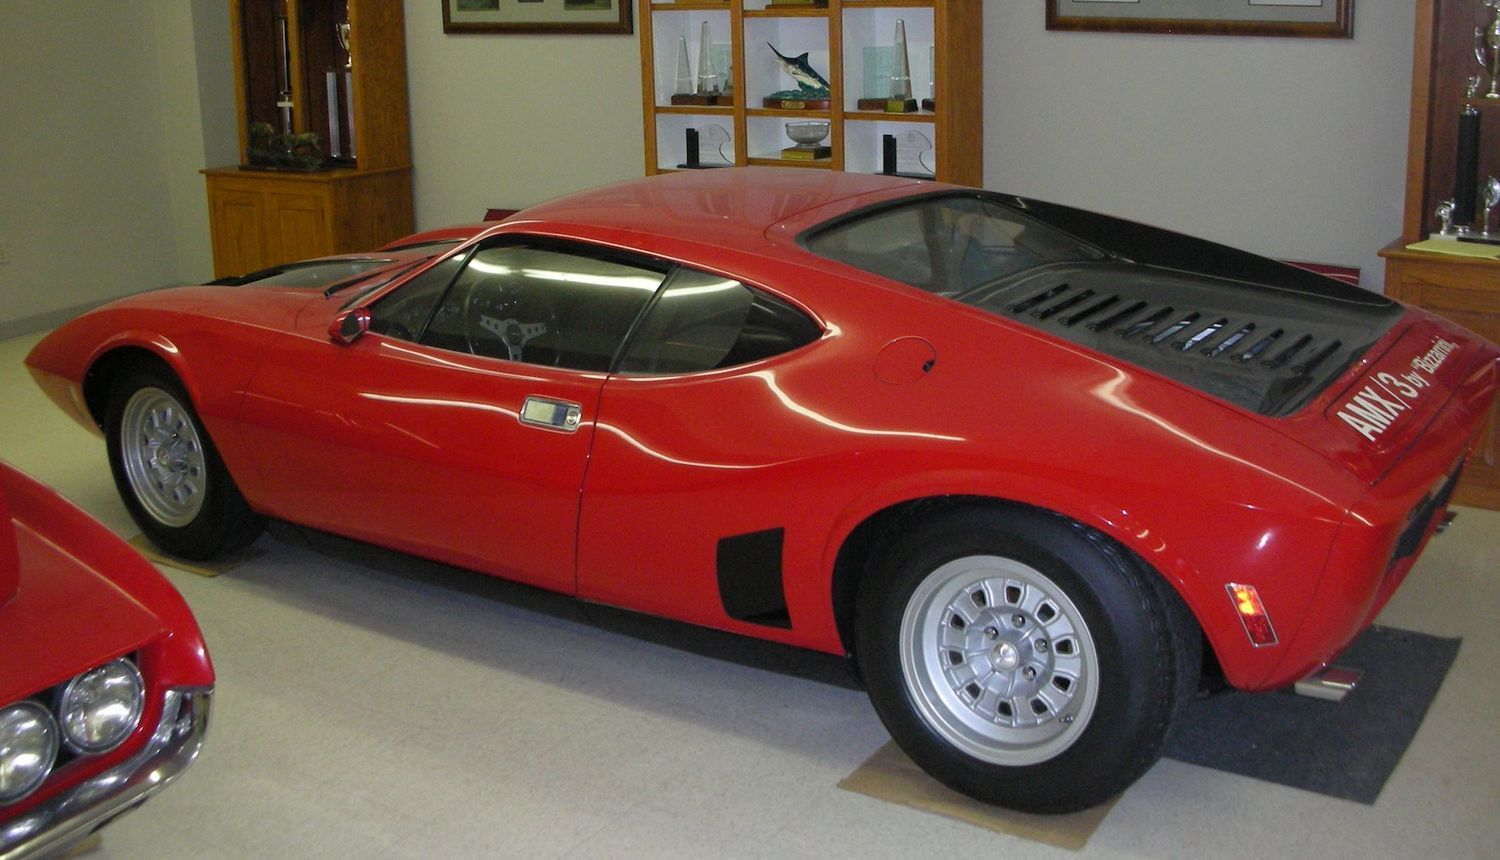 An AMX/3 comes up for sale for the first time in 15 years | Kit cars ...